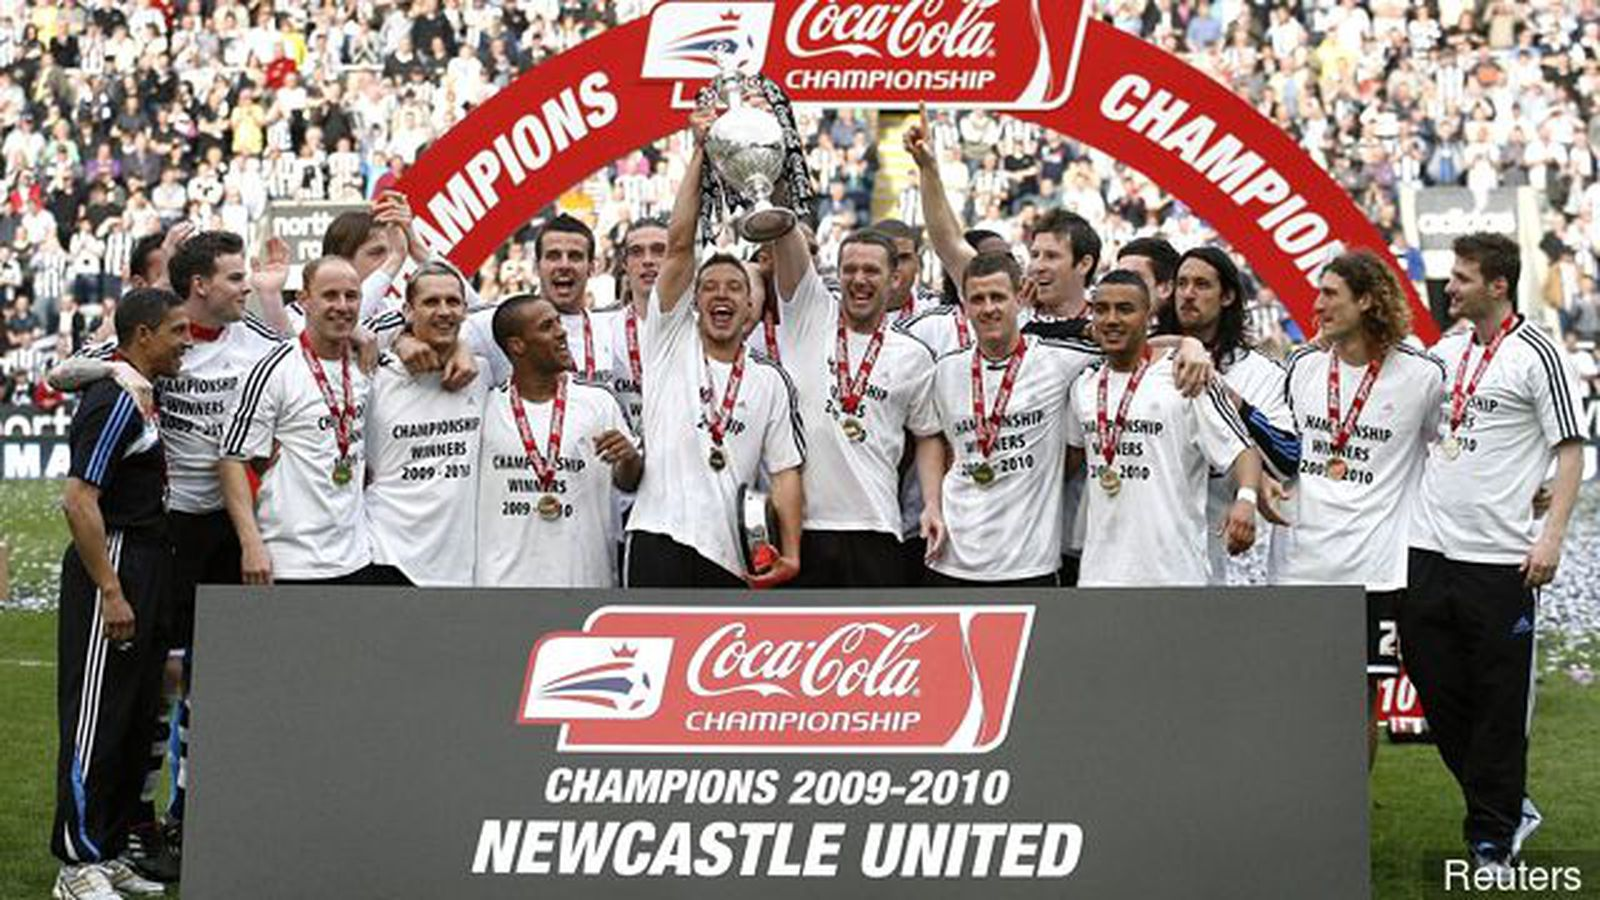 The_newcastle_united_squad_celebrate_with_the_trophy_after_winni_426291.0